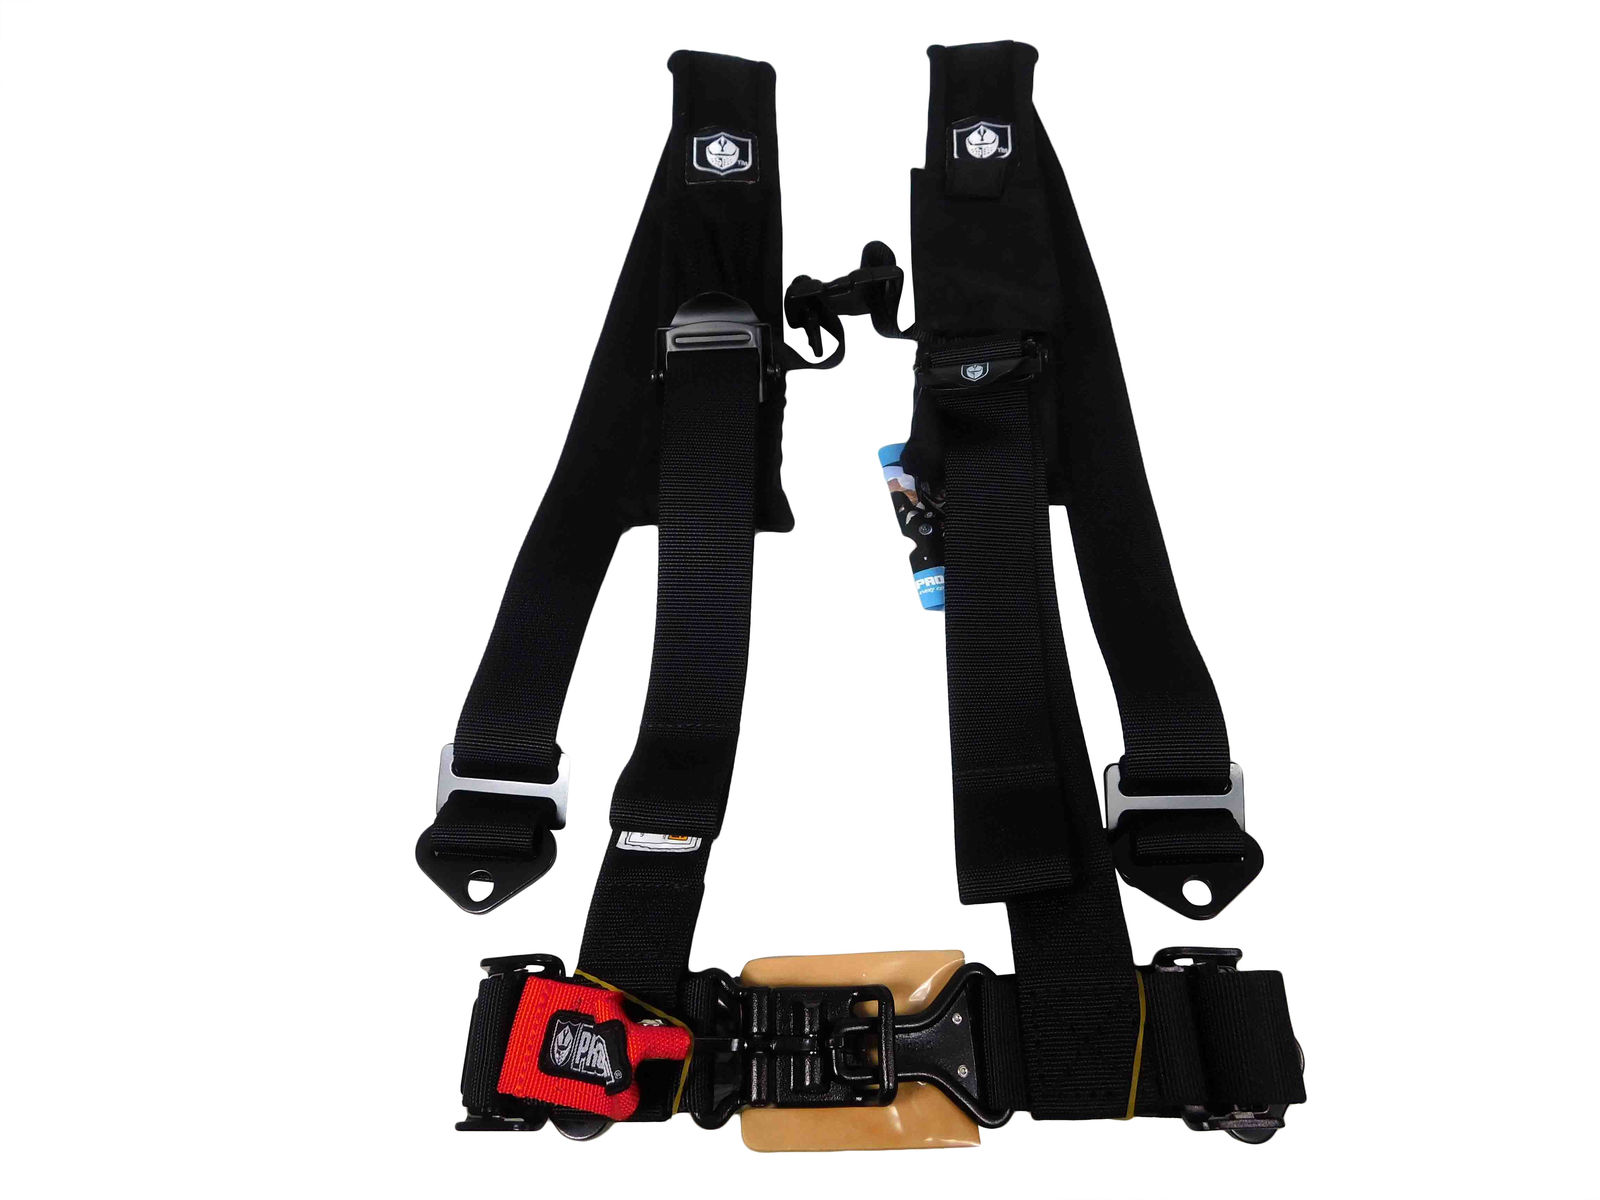 Pro-Armor-A114220-Black-4-Point-Harness-2inch-Straps-image-1